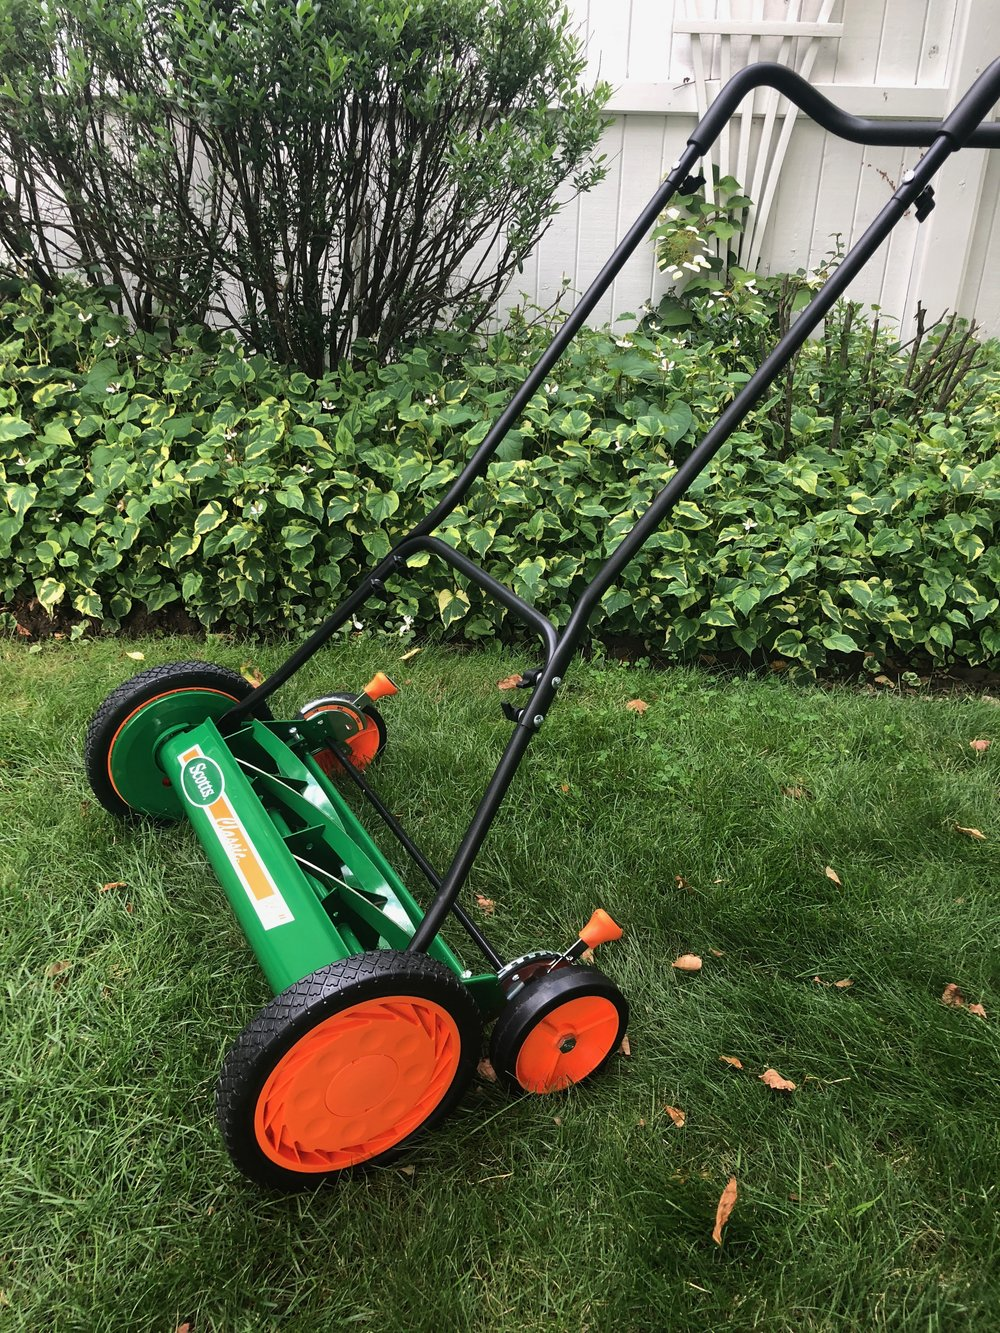 Call me crazy, but I was excited when I got this Scotts Mower as a gift from my husband. It is perfect for some of the smaller lawn areas of our yard. You can read more about my mowing experience  here  or if you want to learn more about the Scotts mower, just click on the photo below.